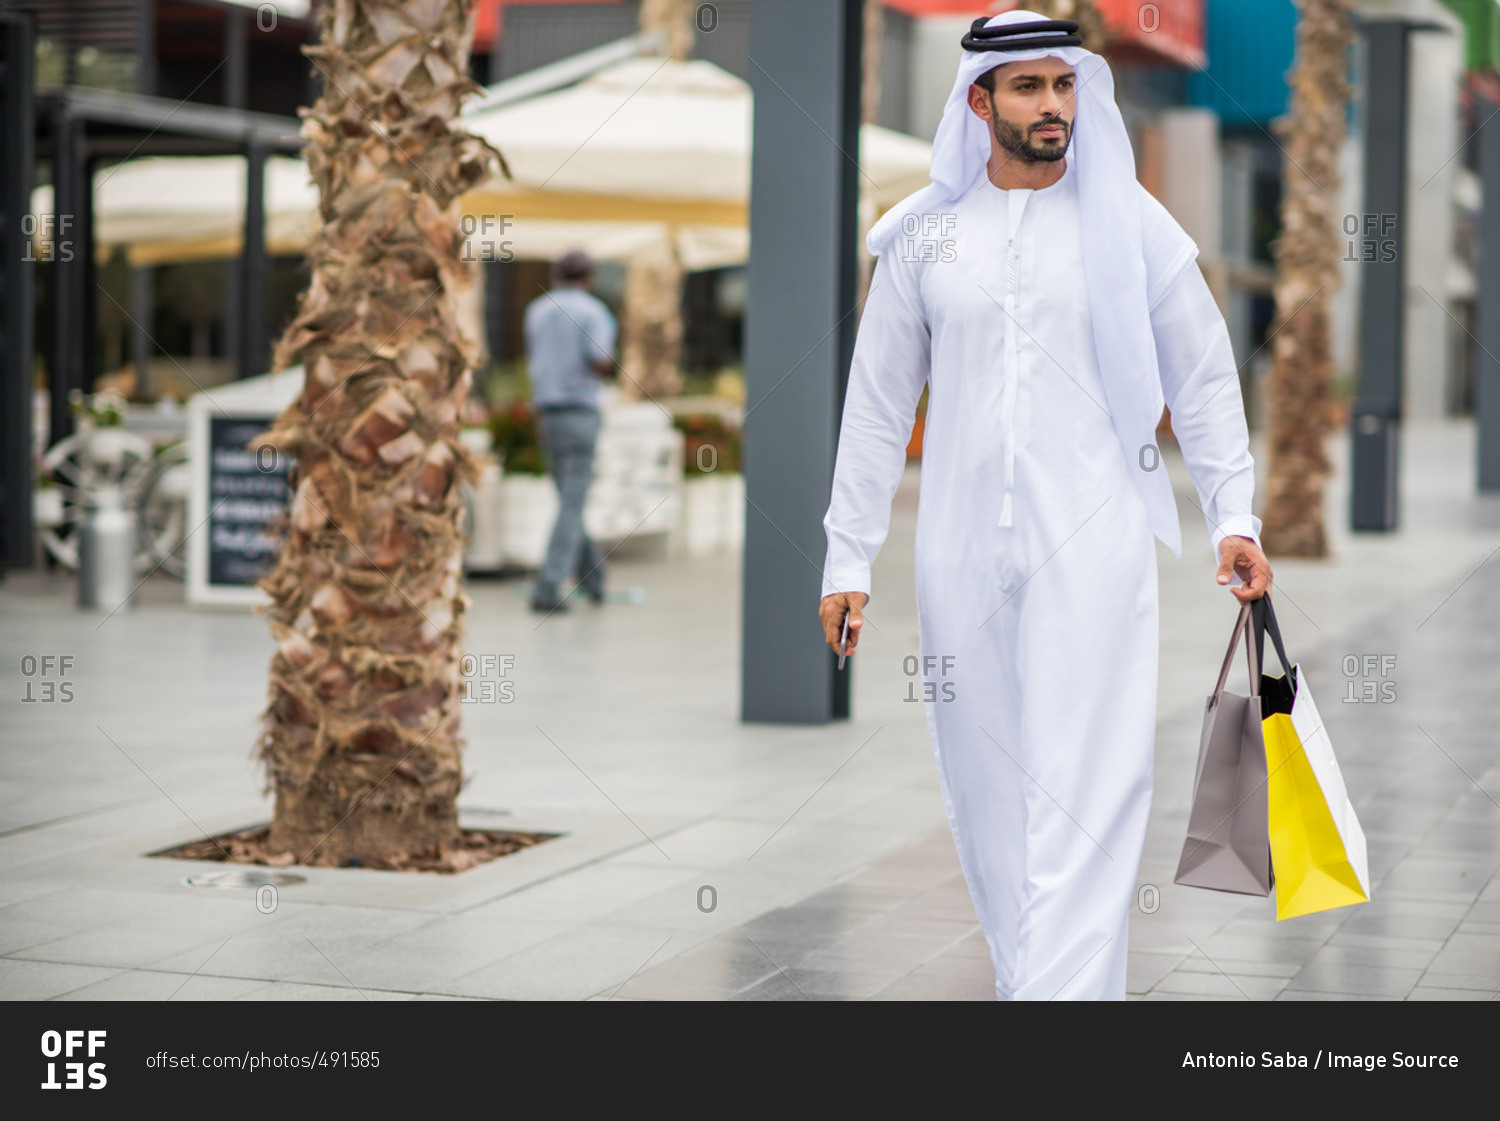 Man wearing traditional middle eastern clothing walking along man wearing traditional middle eastern clothing walking along street carrying shopping bags dubai united sciox Images